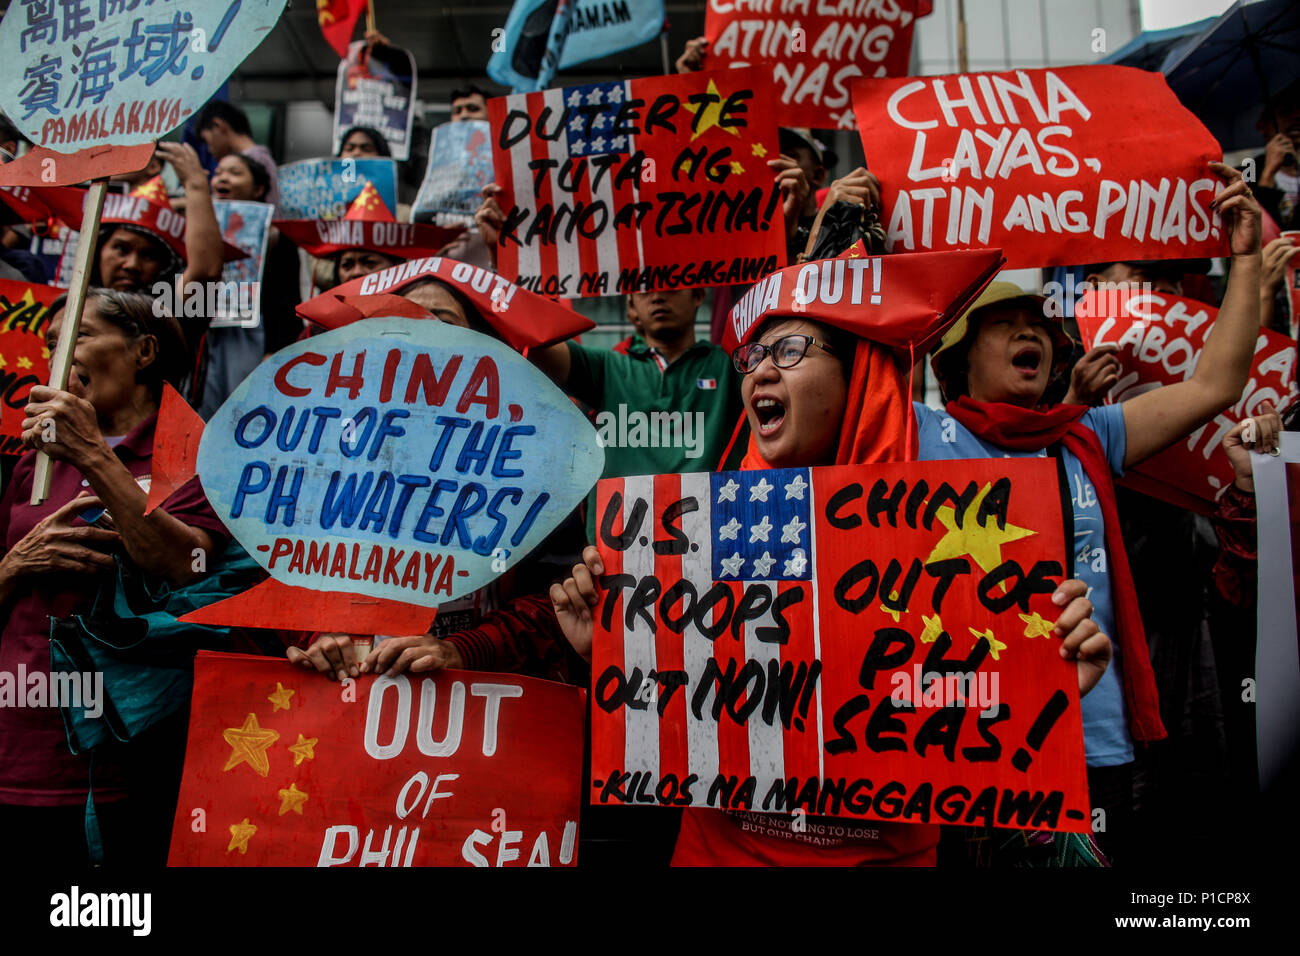 Manila, Philippines. 1st Jan, 2000. Various militant groups protest in front of the Chinese consulate in Makati City, Philippines in celebration of the 120th Philippine Independence Day on Tuesday. June 12, 2018. The groups condemn the ongoing dispute between the Philippines and China in the South China Sea. Credit: Basilio H. Sepe/ZUMA Wire/Alamy Live News - Stock Image